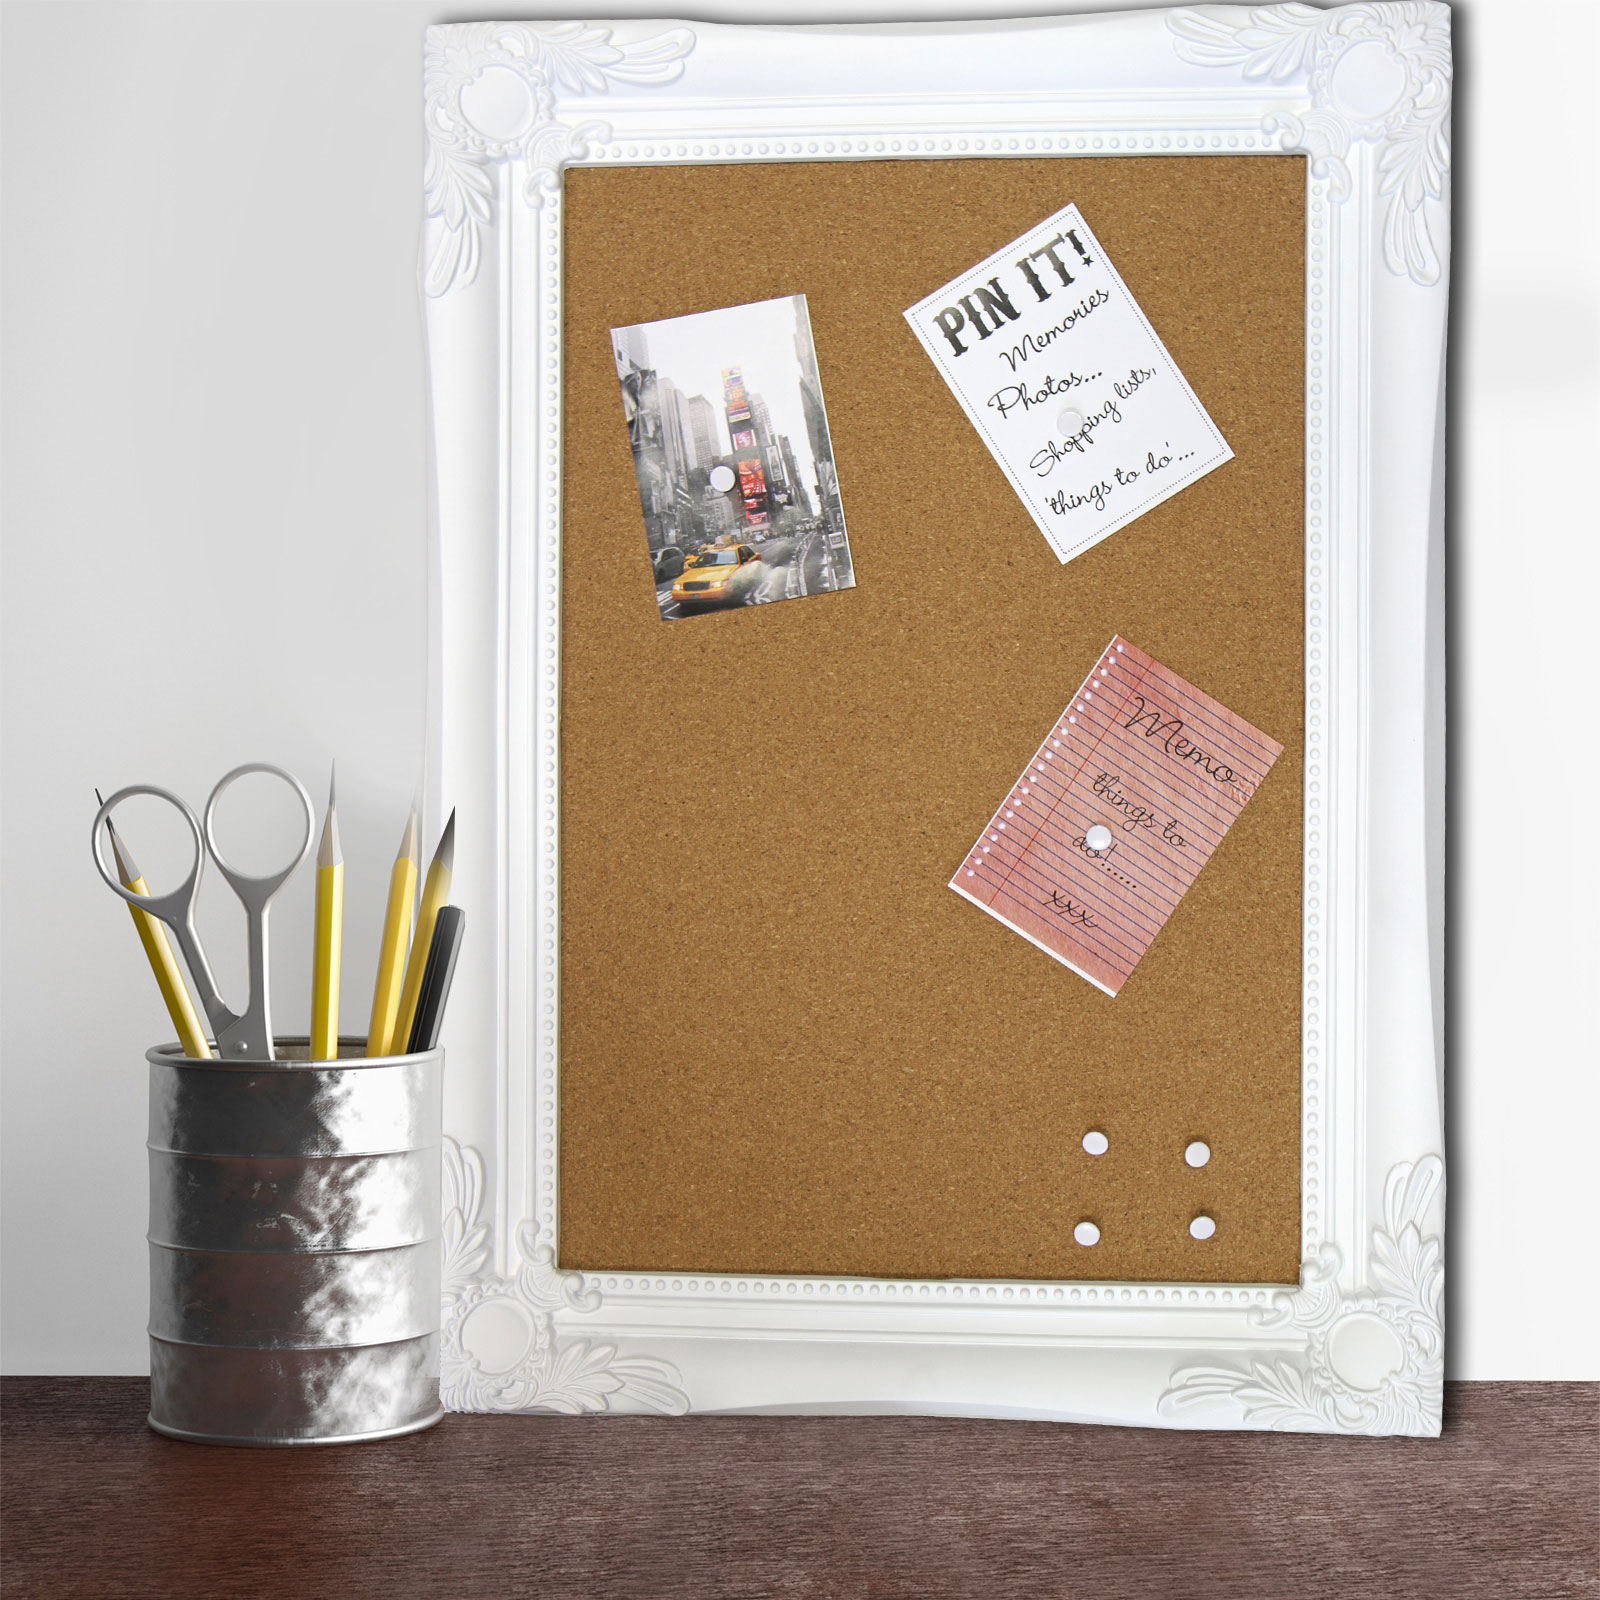 large modern chic framed cork pin board memo notice board for home office ebay. Black Bedroom Furniture Sets. Home Design Ideas